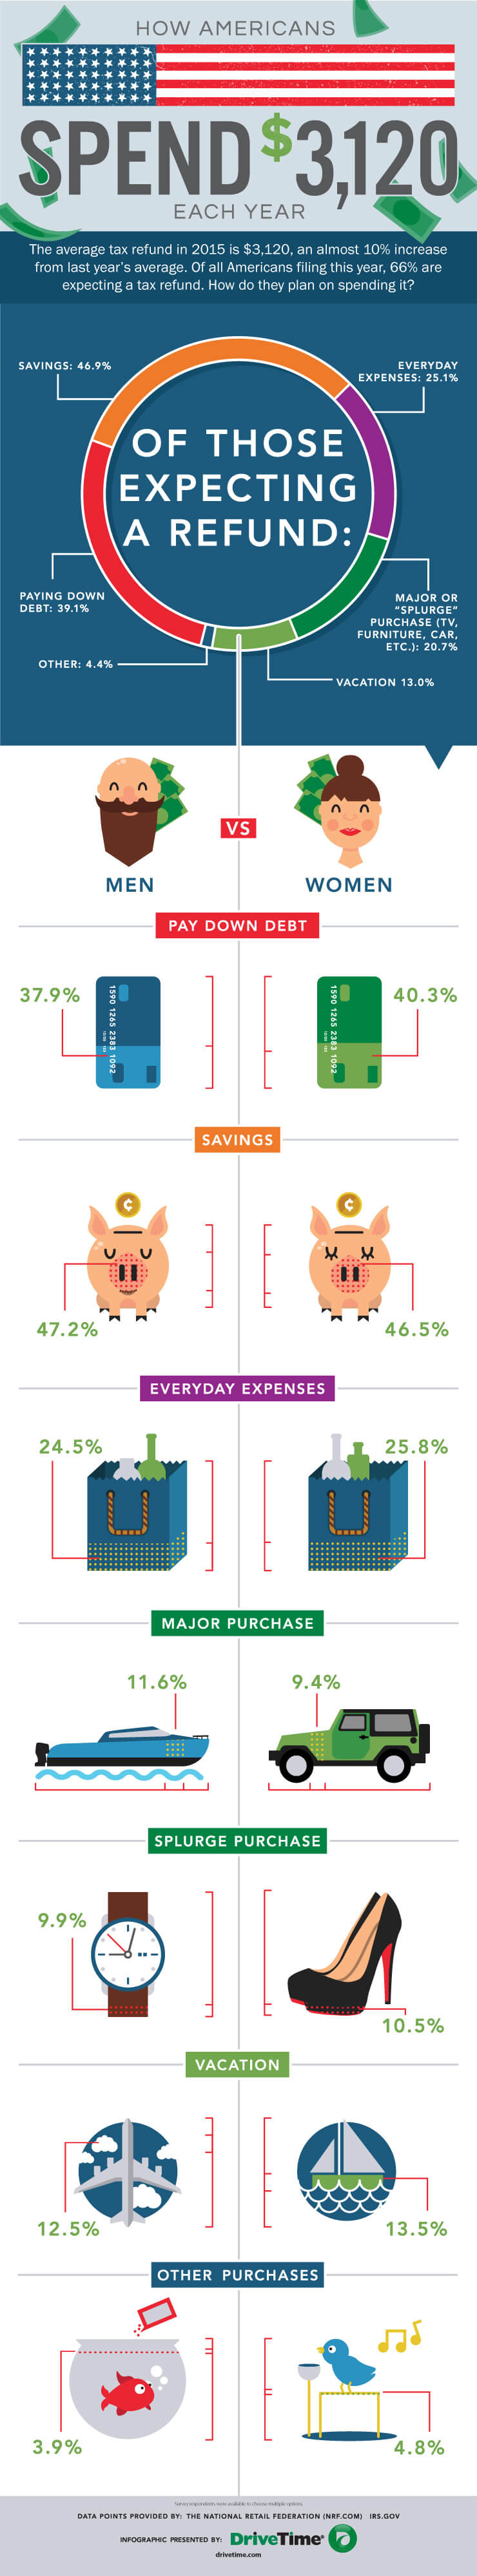 How-Americans-Spend-Tax-Refund-2015